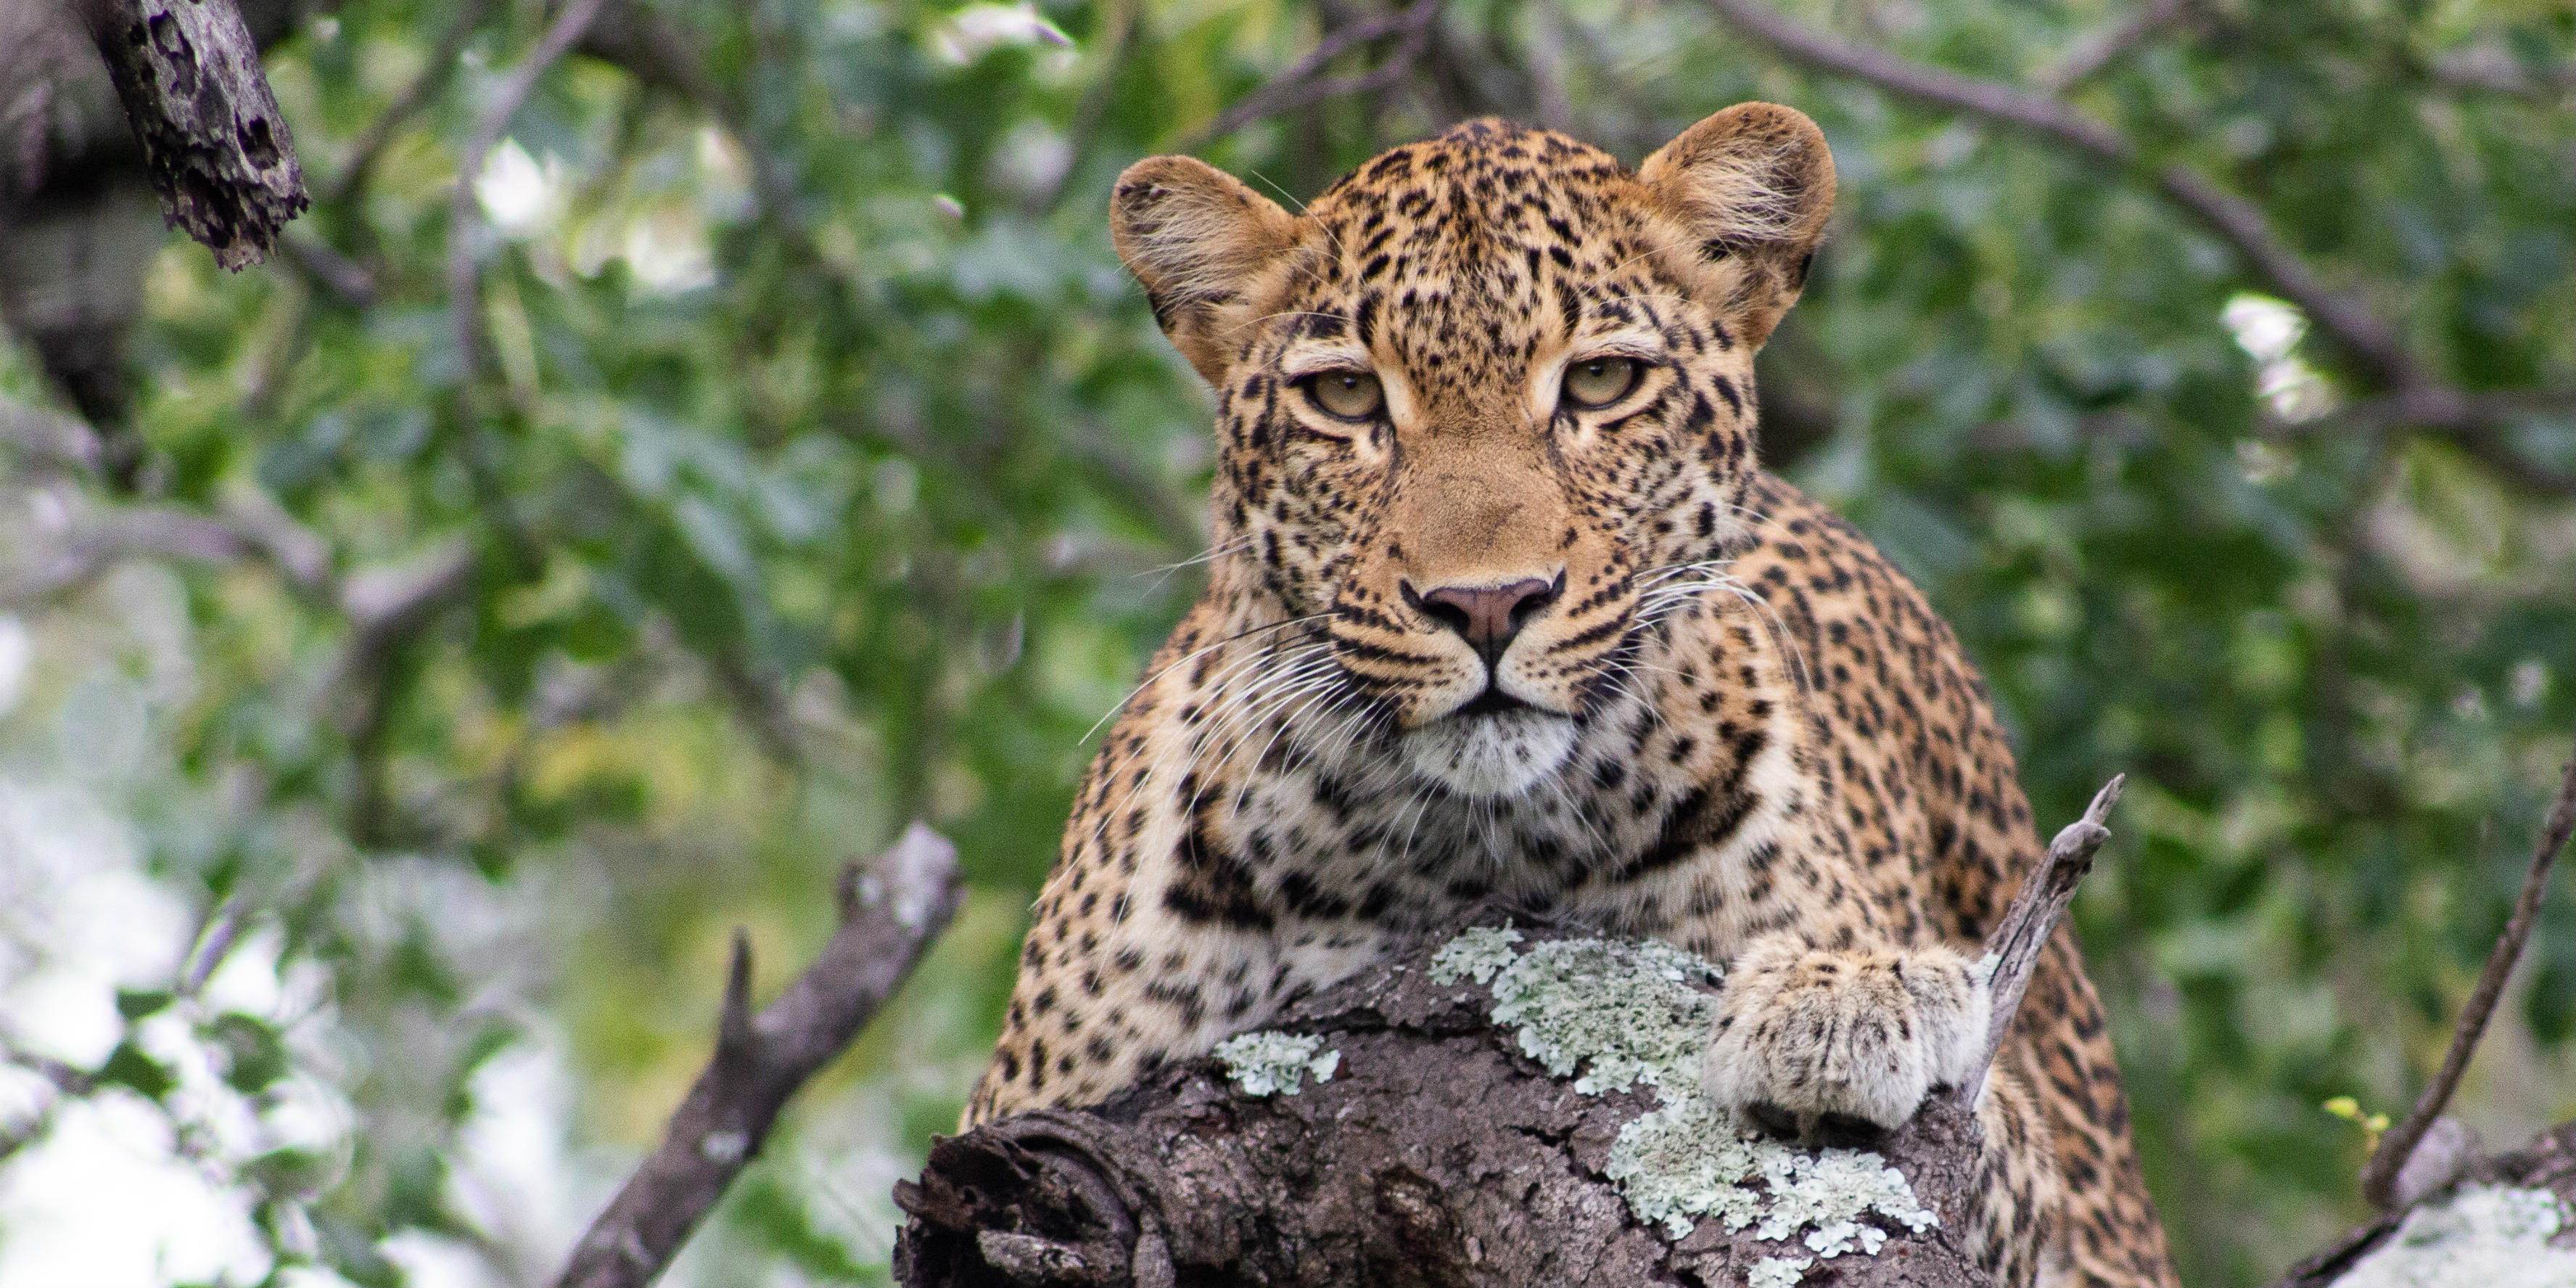 A leopard surveys a wildlife conservation intern from the treetops.